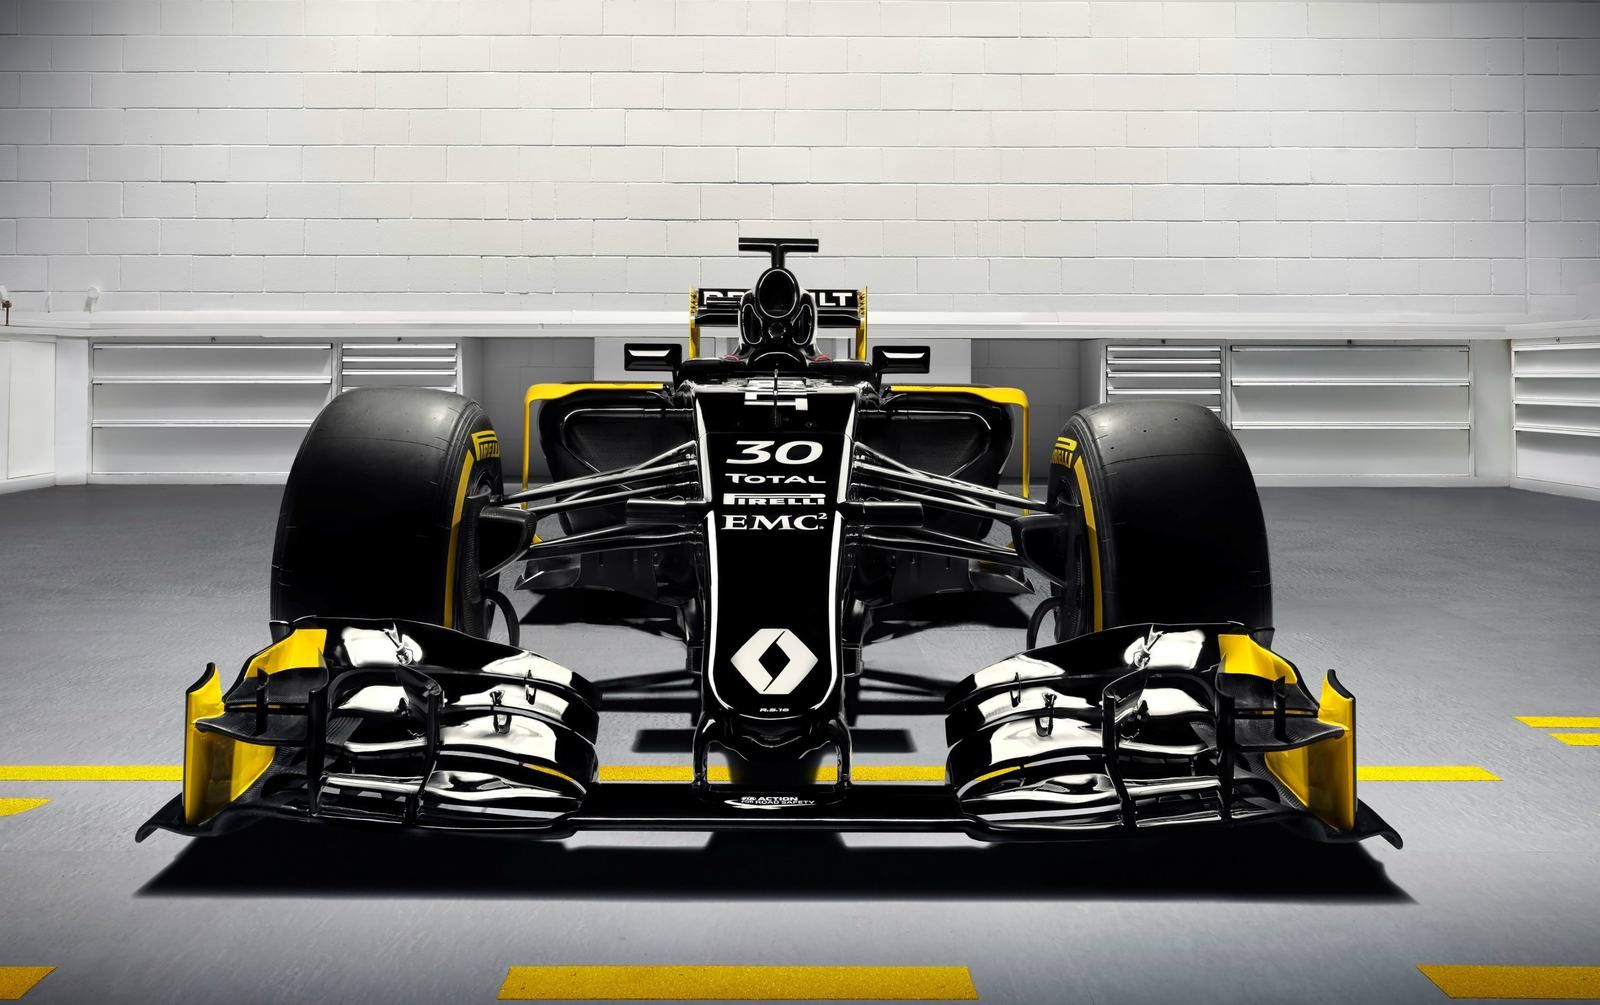 [VIDEO] THE NEW RENAULT SPORT FORMULA ONE TEAM